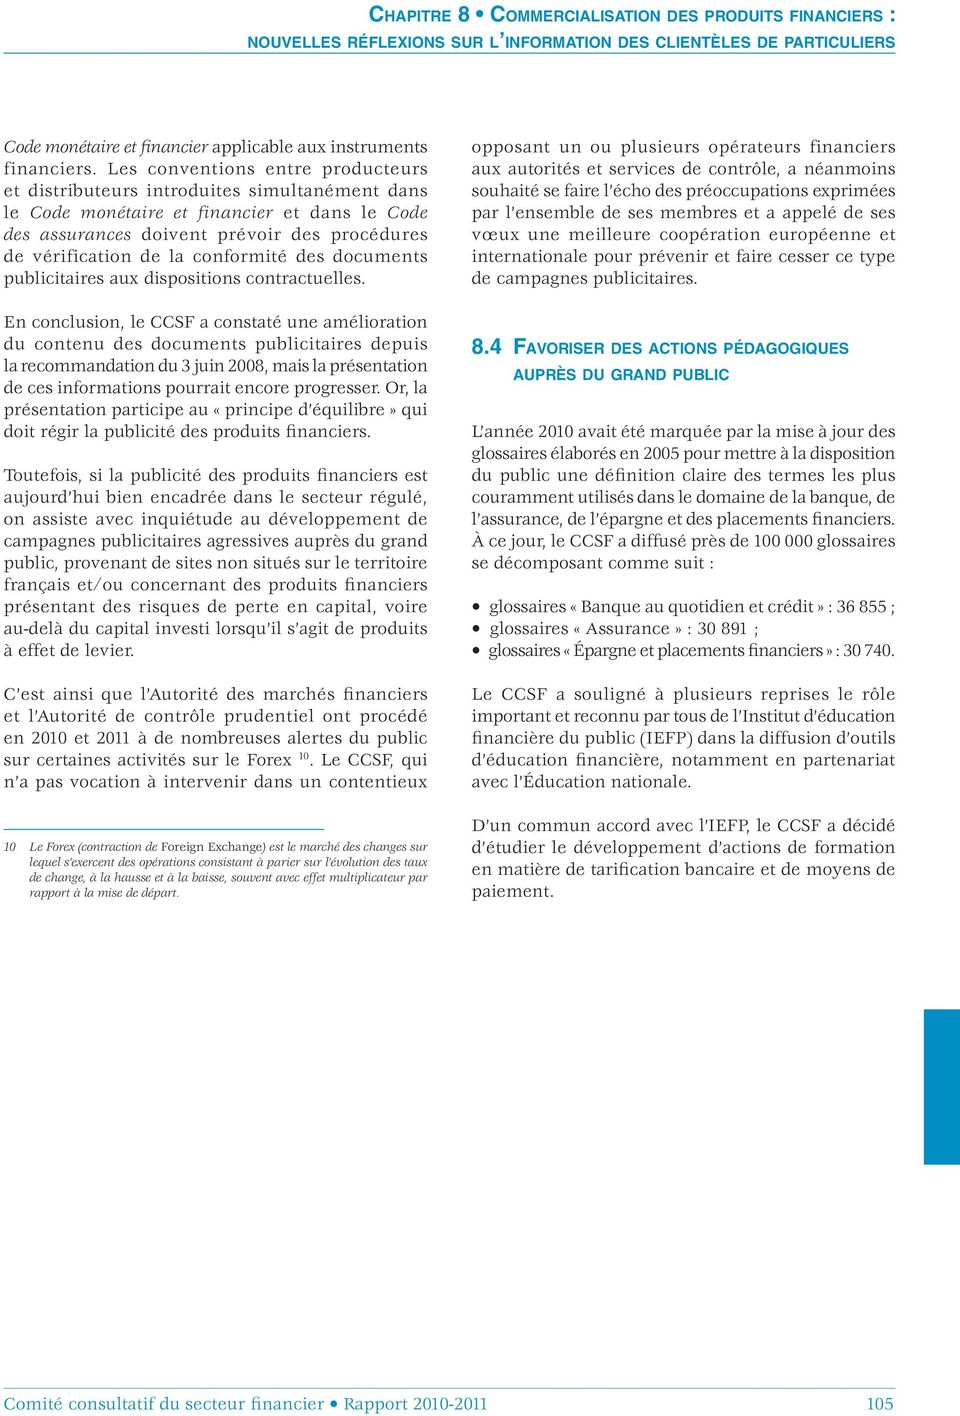 conformité des documents publicitaires aux dispositions contractuelles.